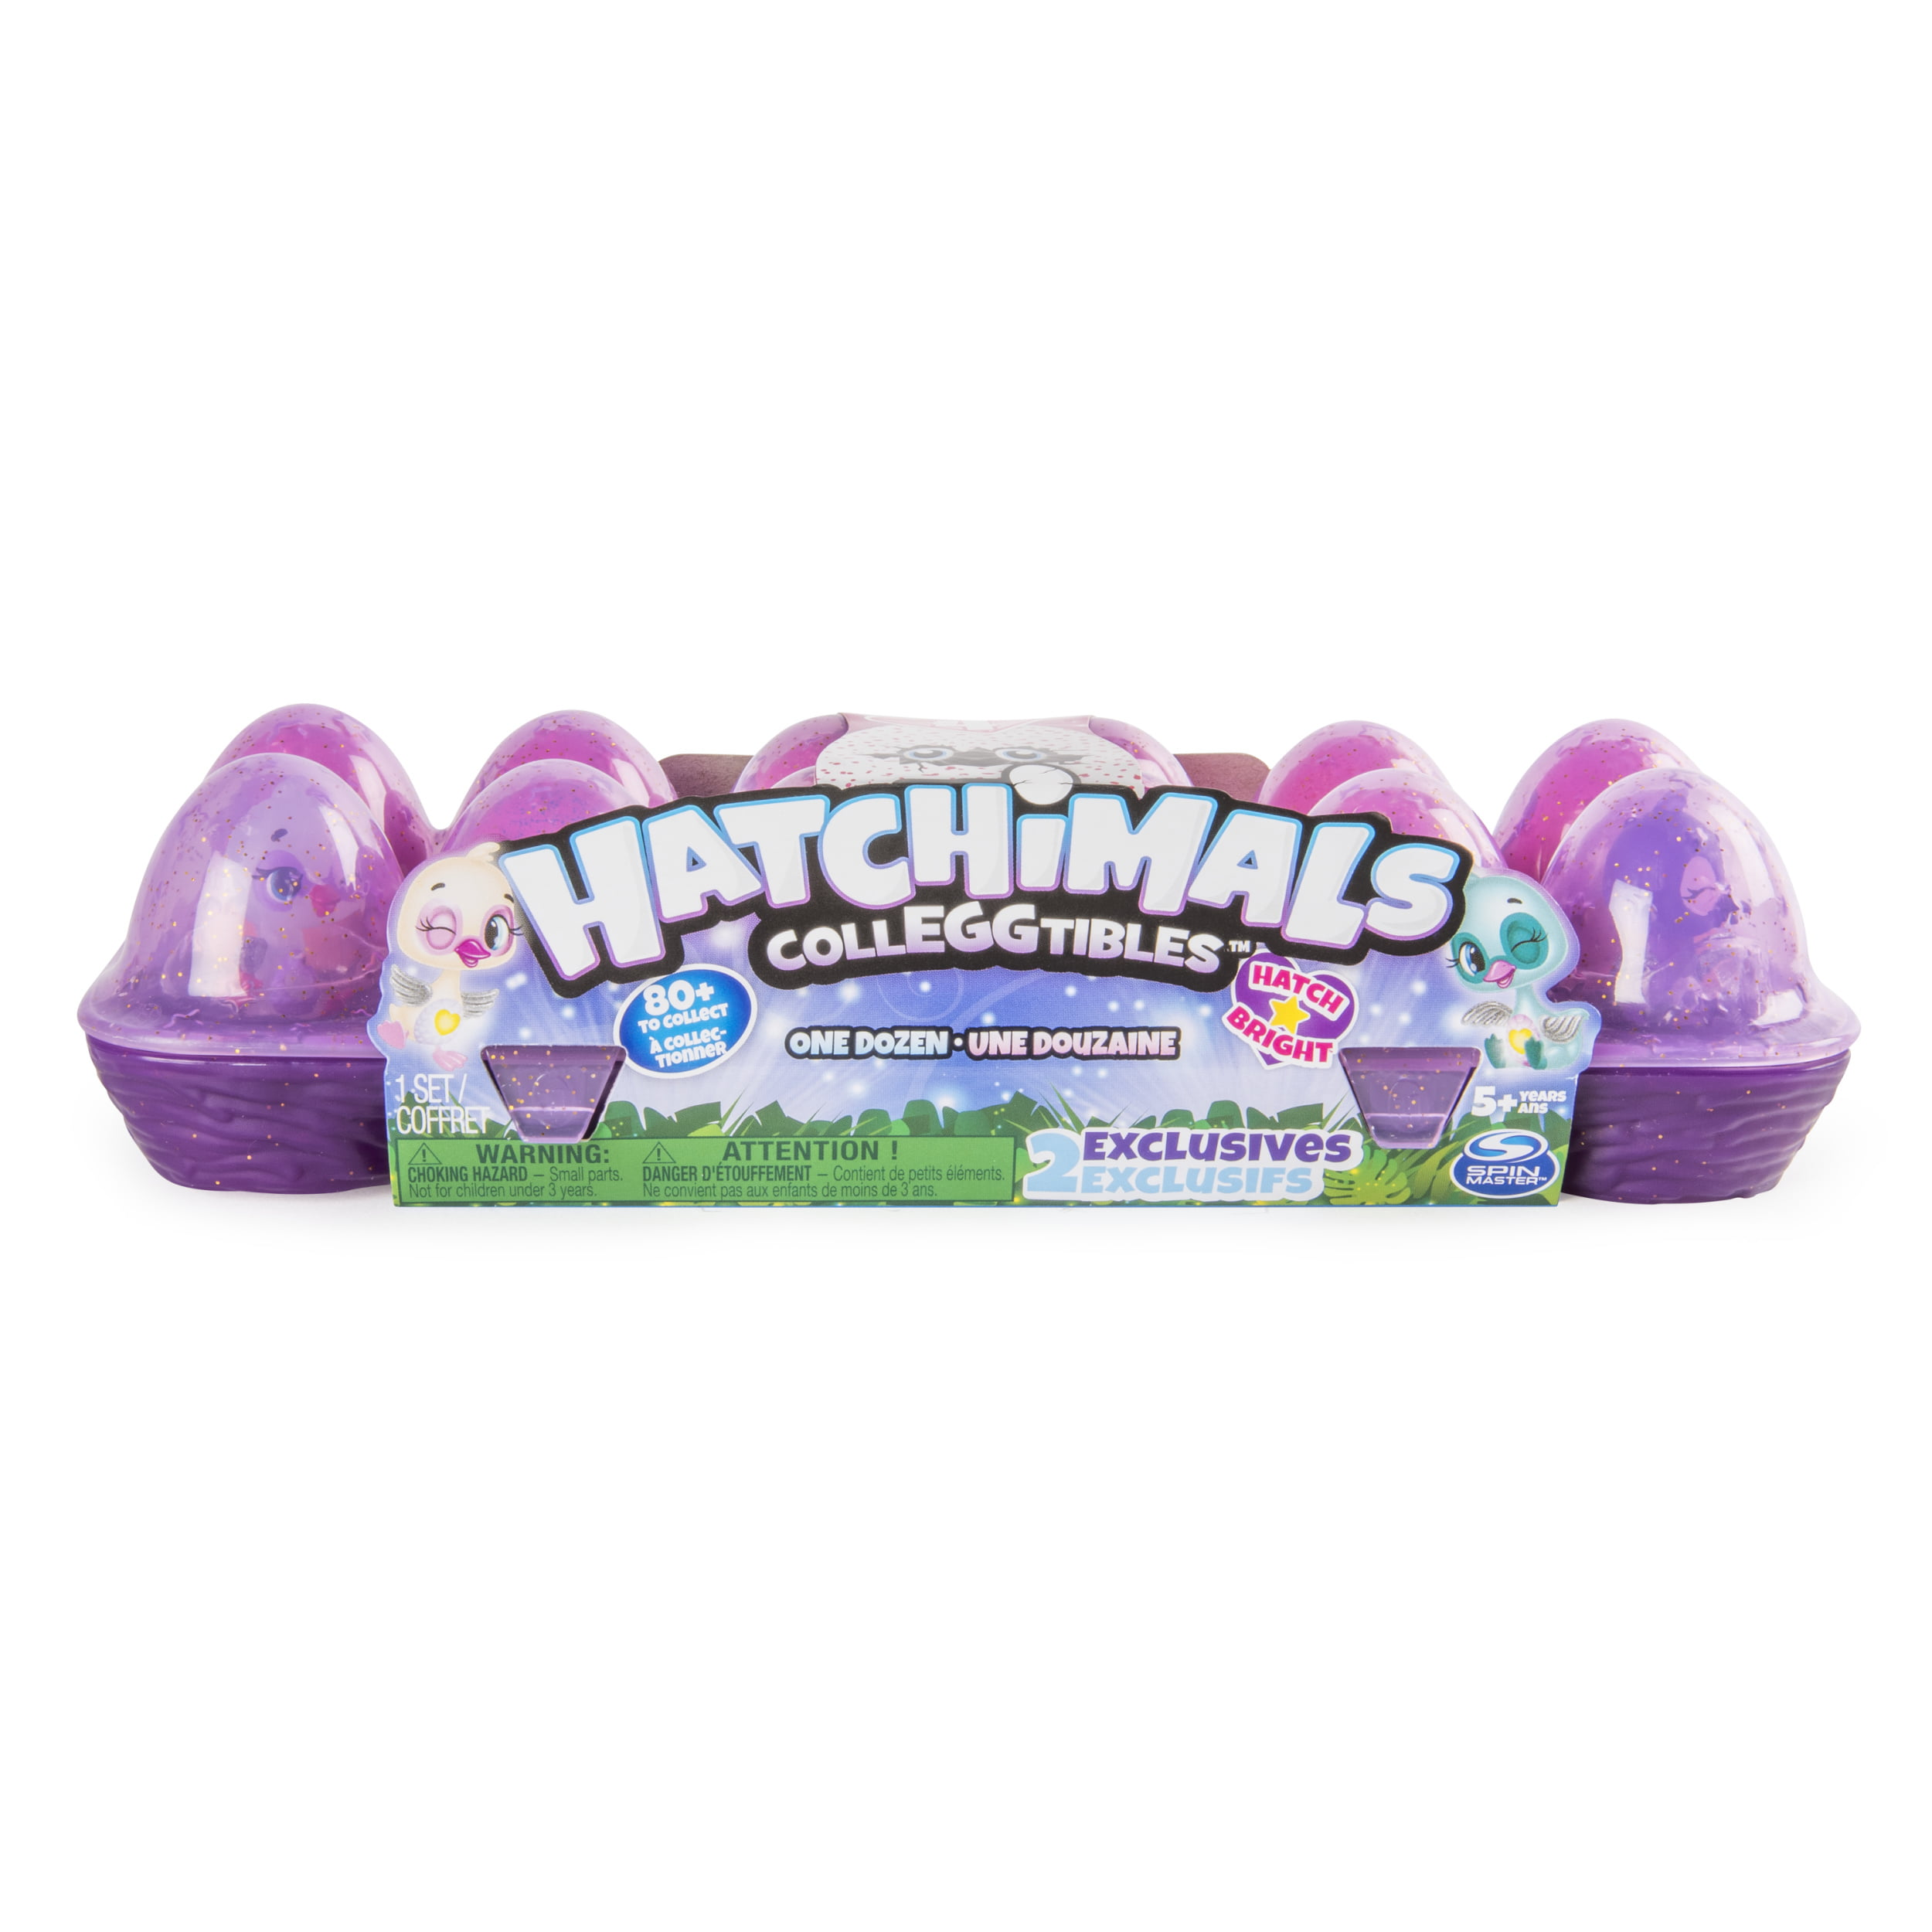 Hatchimals Colleggtibles 12 Pack Egg Carton With Exclusive Season 4 Hatchimals Colleggtibles For Ages 5 And Up Styles And Colors May Vary